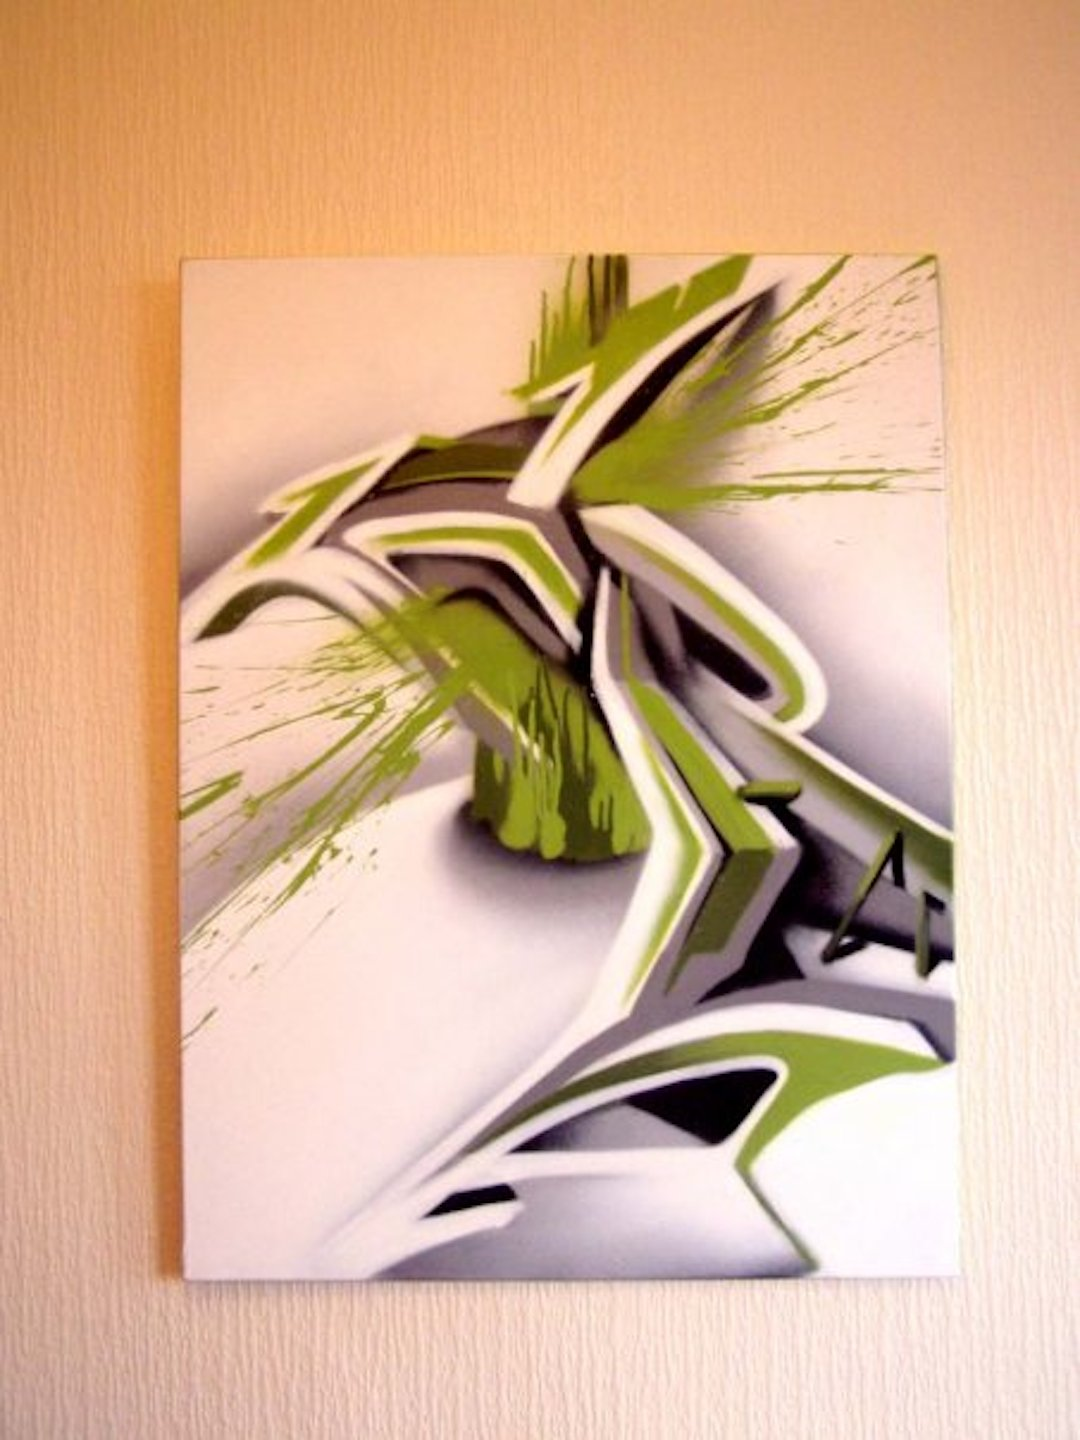 canvas-graffiti-bristol-zase-zasedesign-70